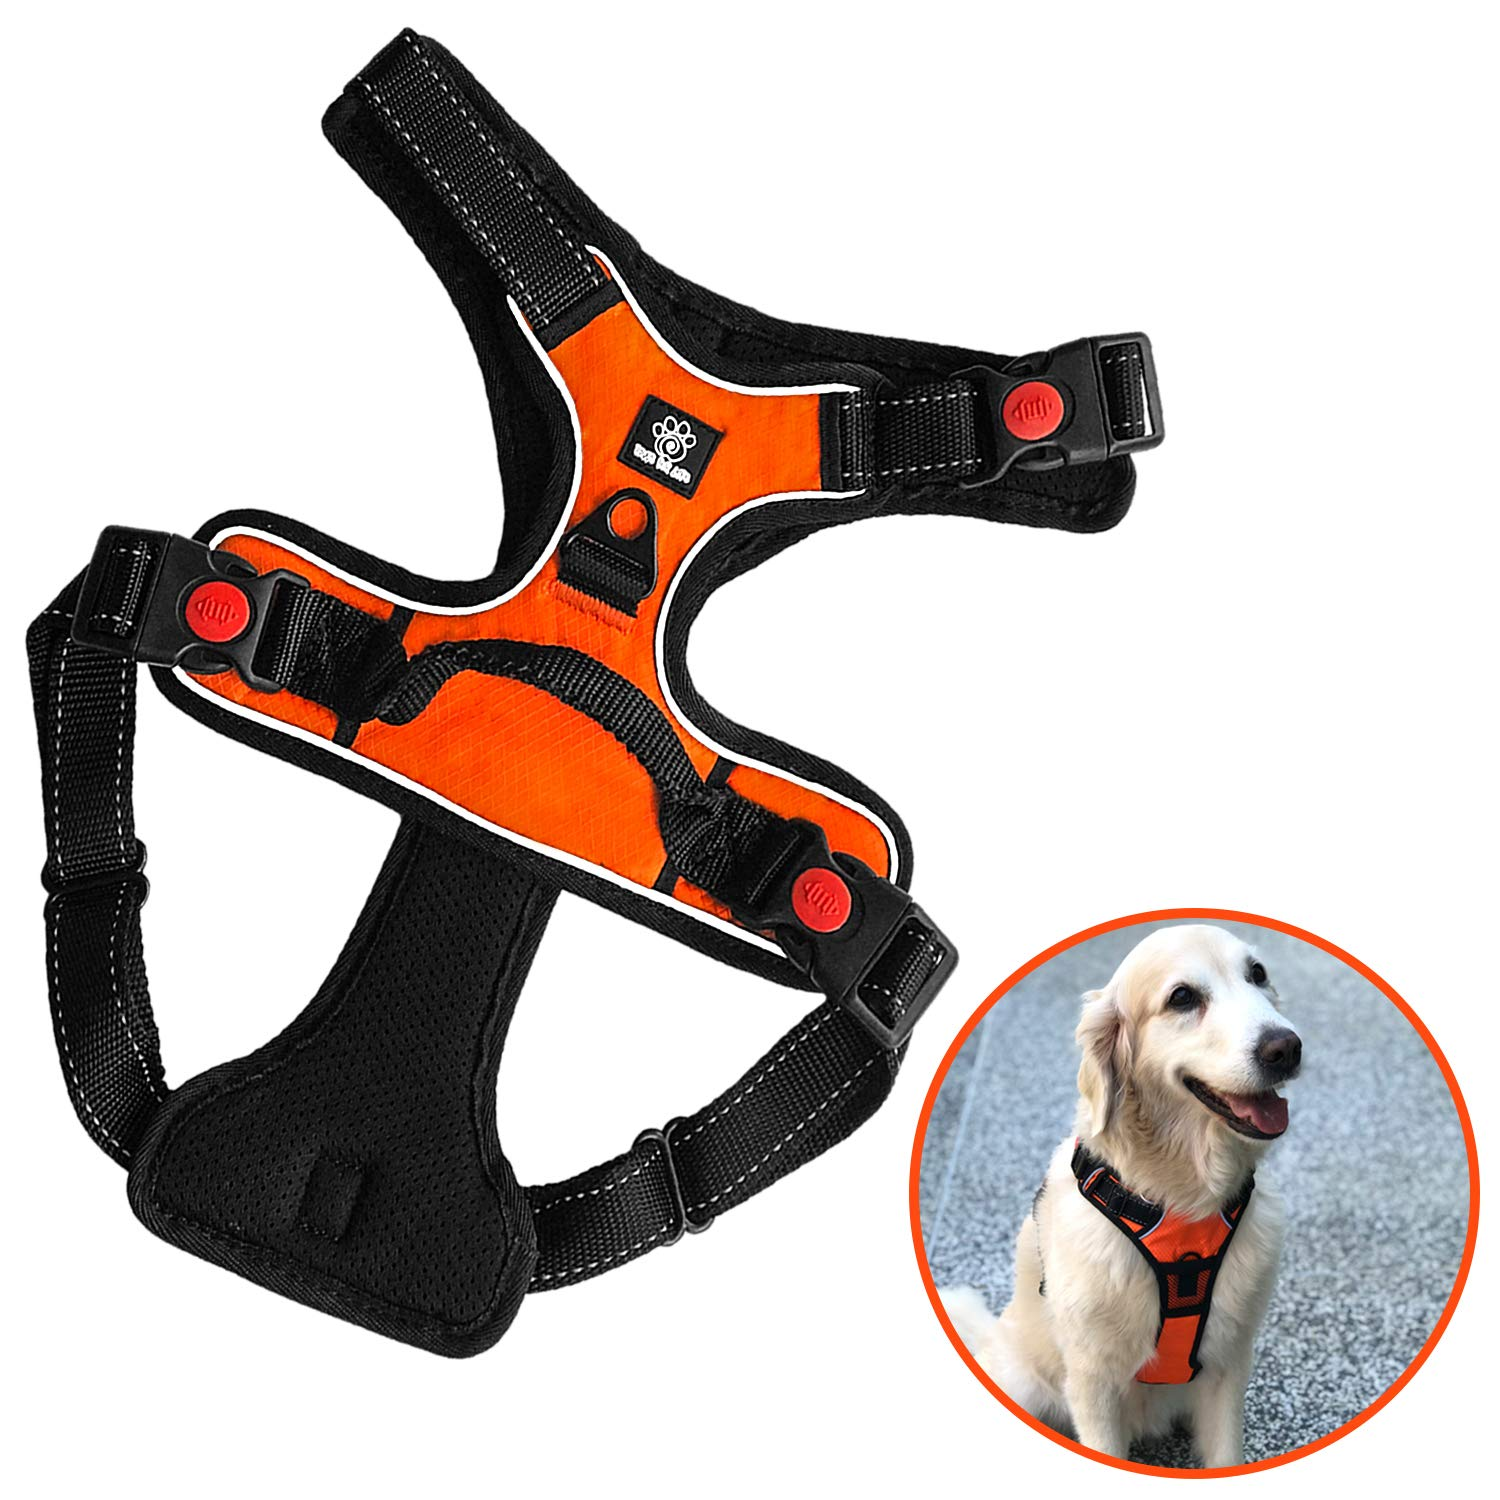 Paws Fur Life No Pull Large Dog Harness Pet Walking Reflective Oxford Padded Soft Vest for Large Dogs Adjustable Pet Vest with Strong Metal D-Ring & Heavy Duty Buckles